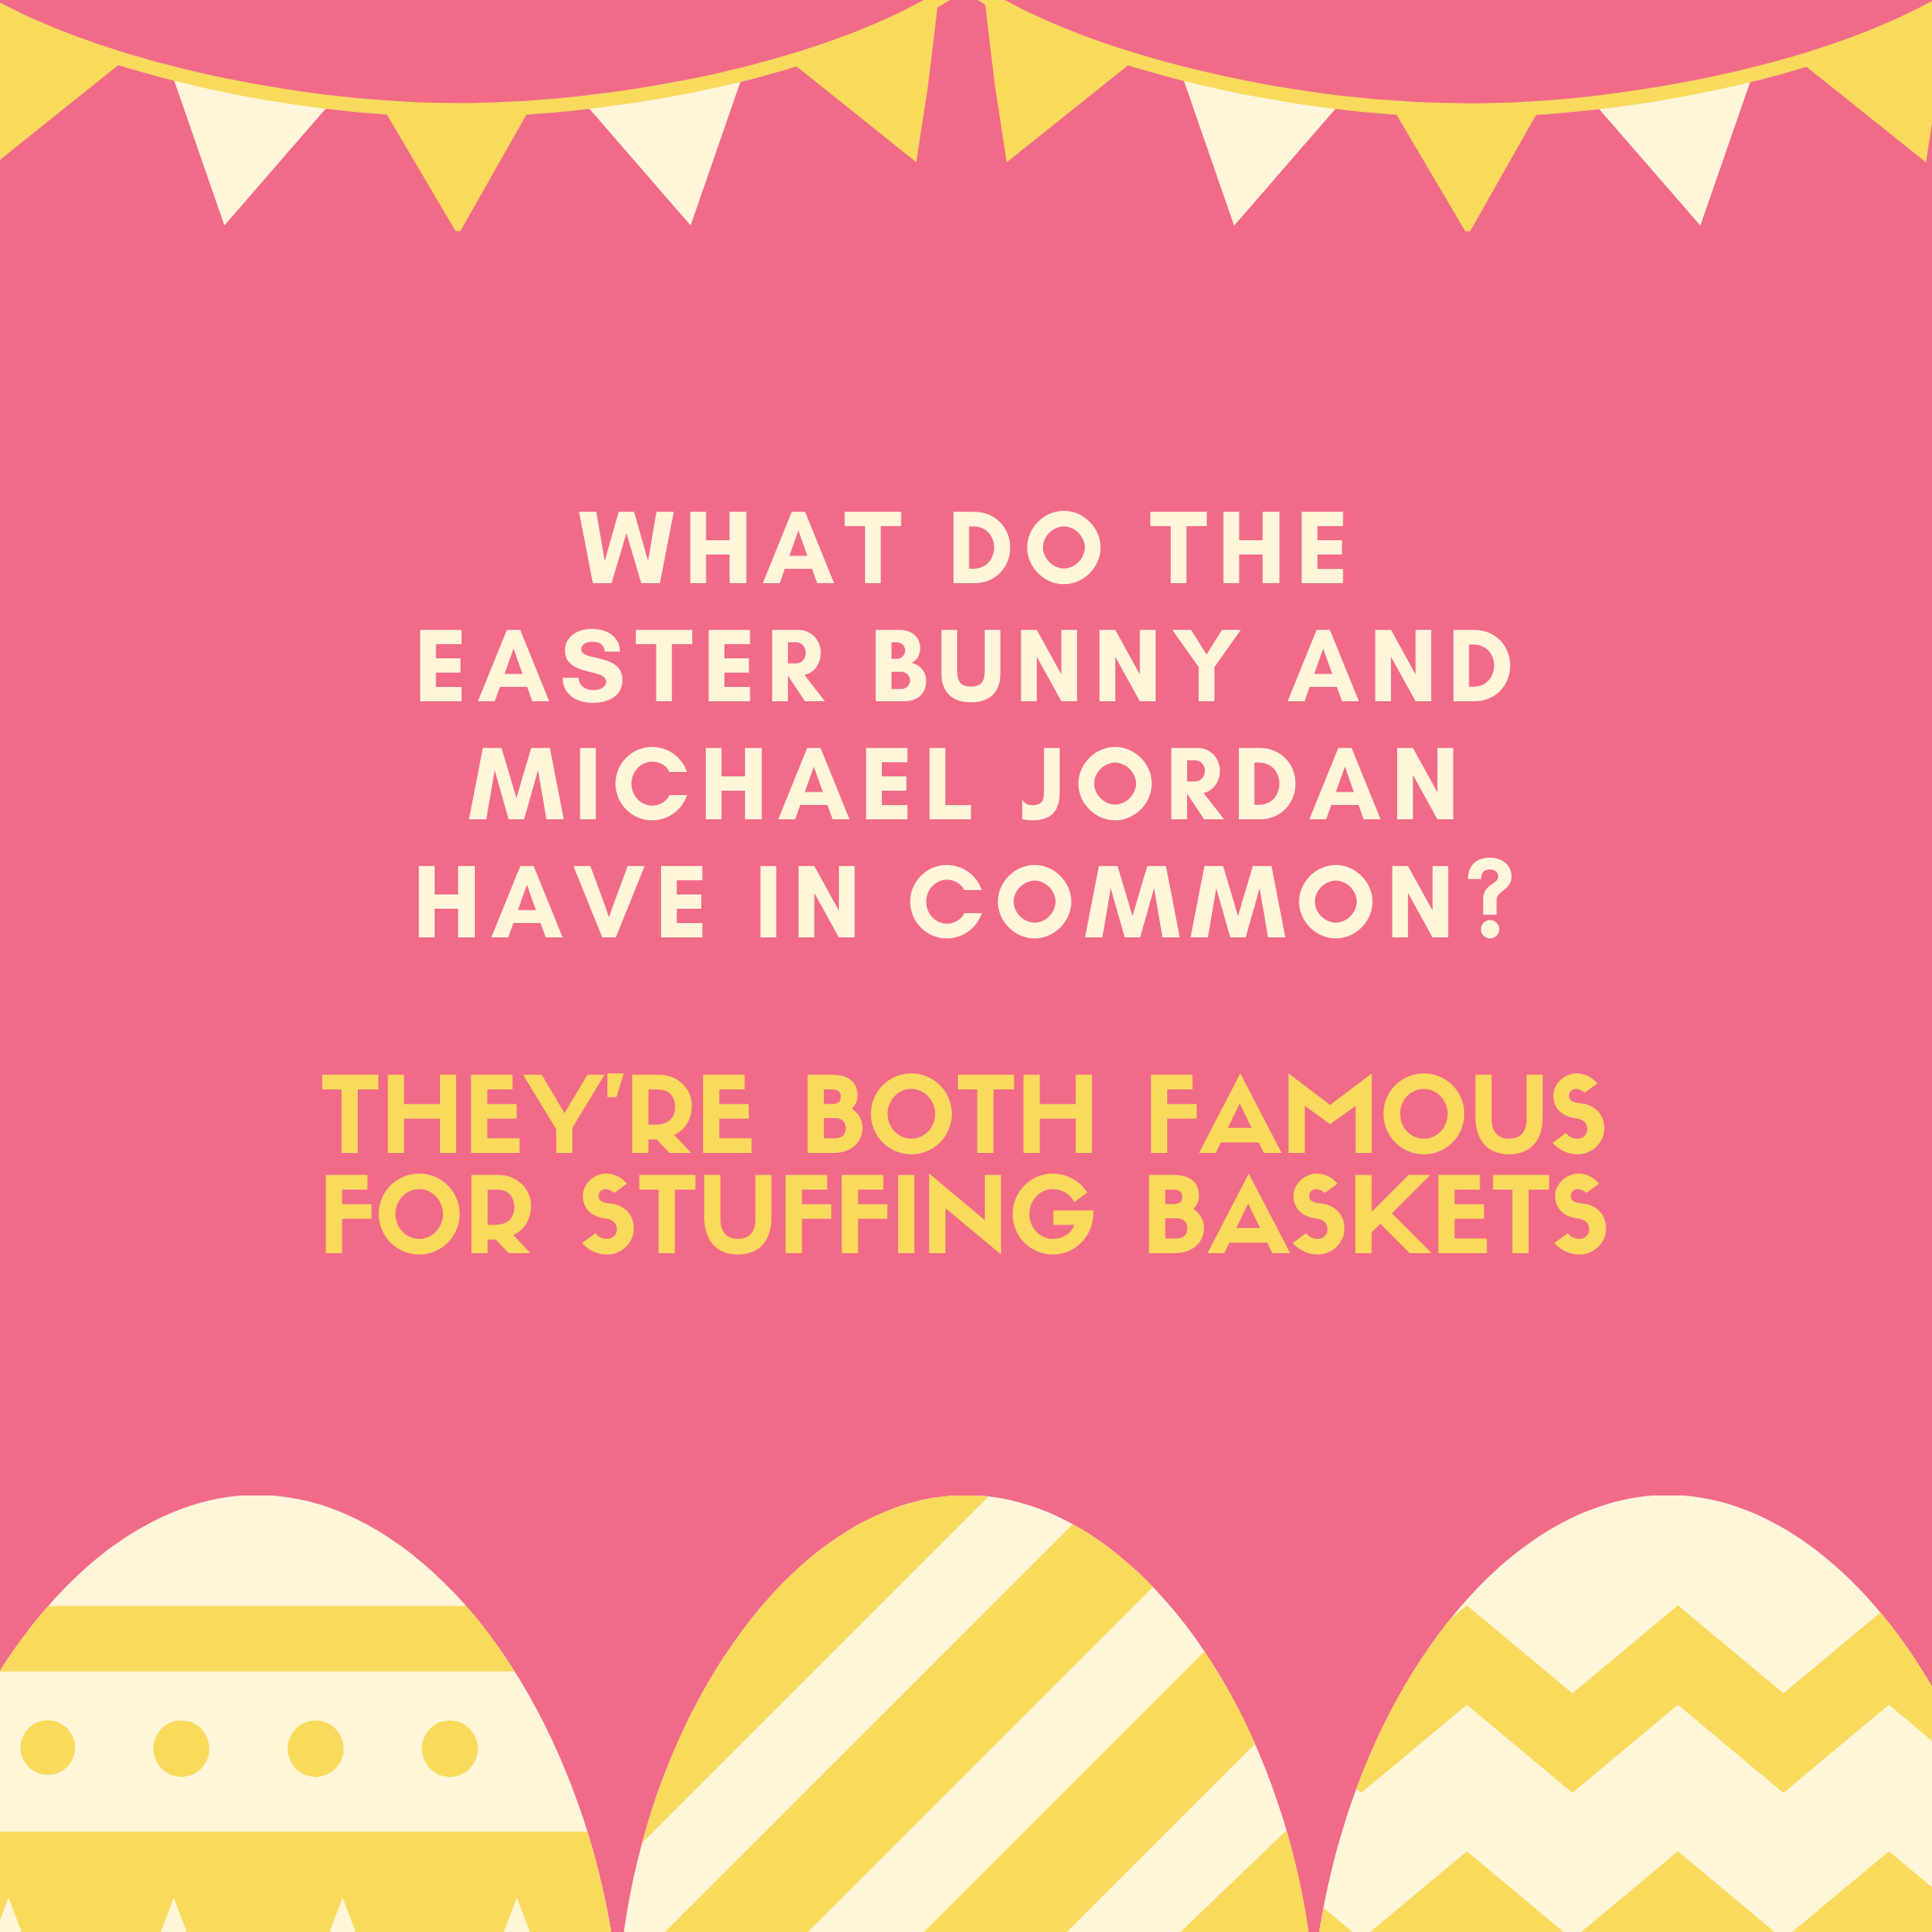 What do the Easter Bunny and Michael Jordan have in common?